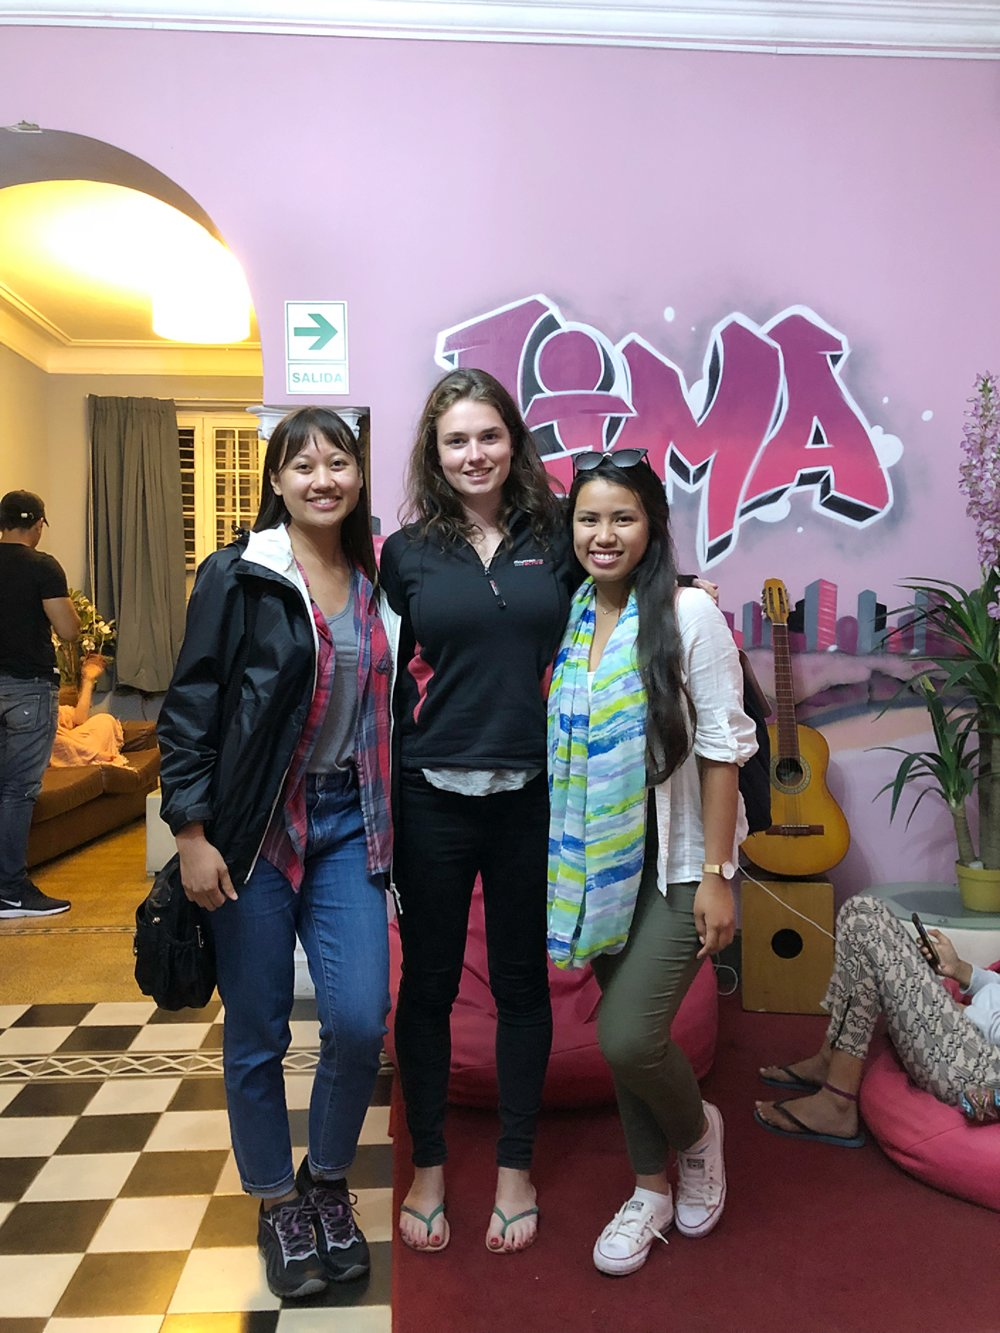 My friend Cat and I with our new friend Megan that we met during our hostel in Lima and hung out with throughout our time there